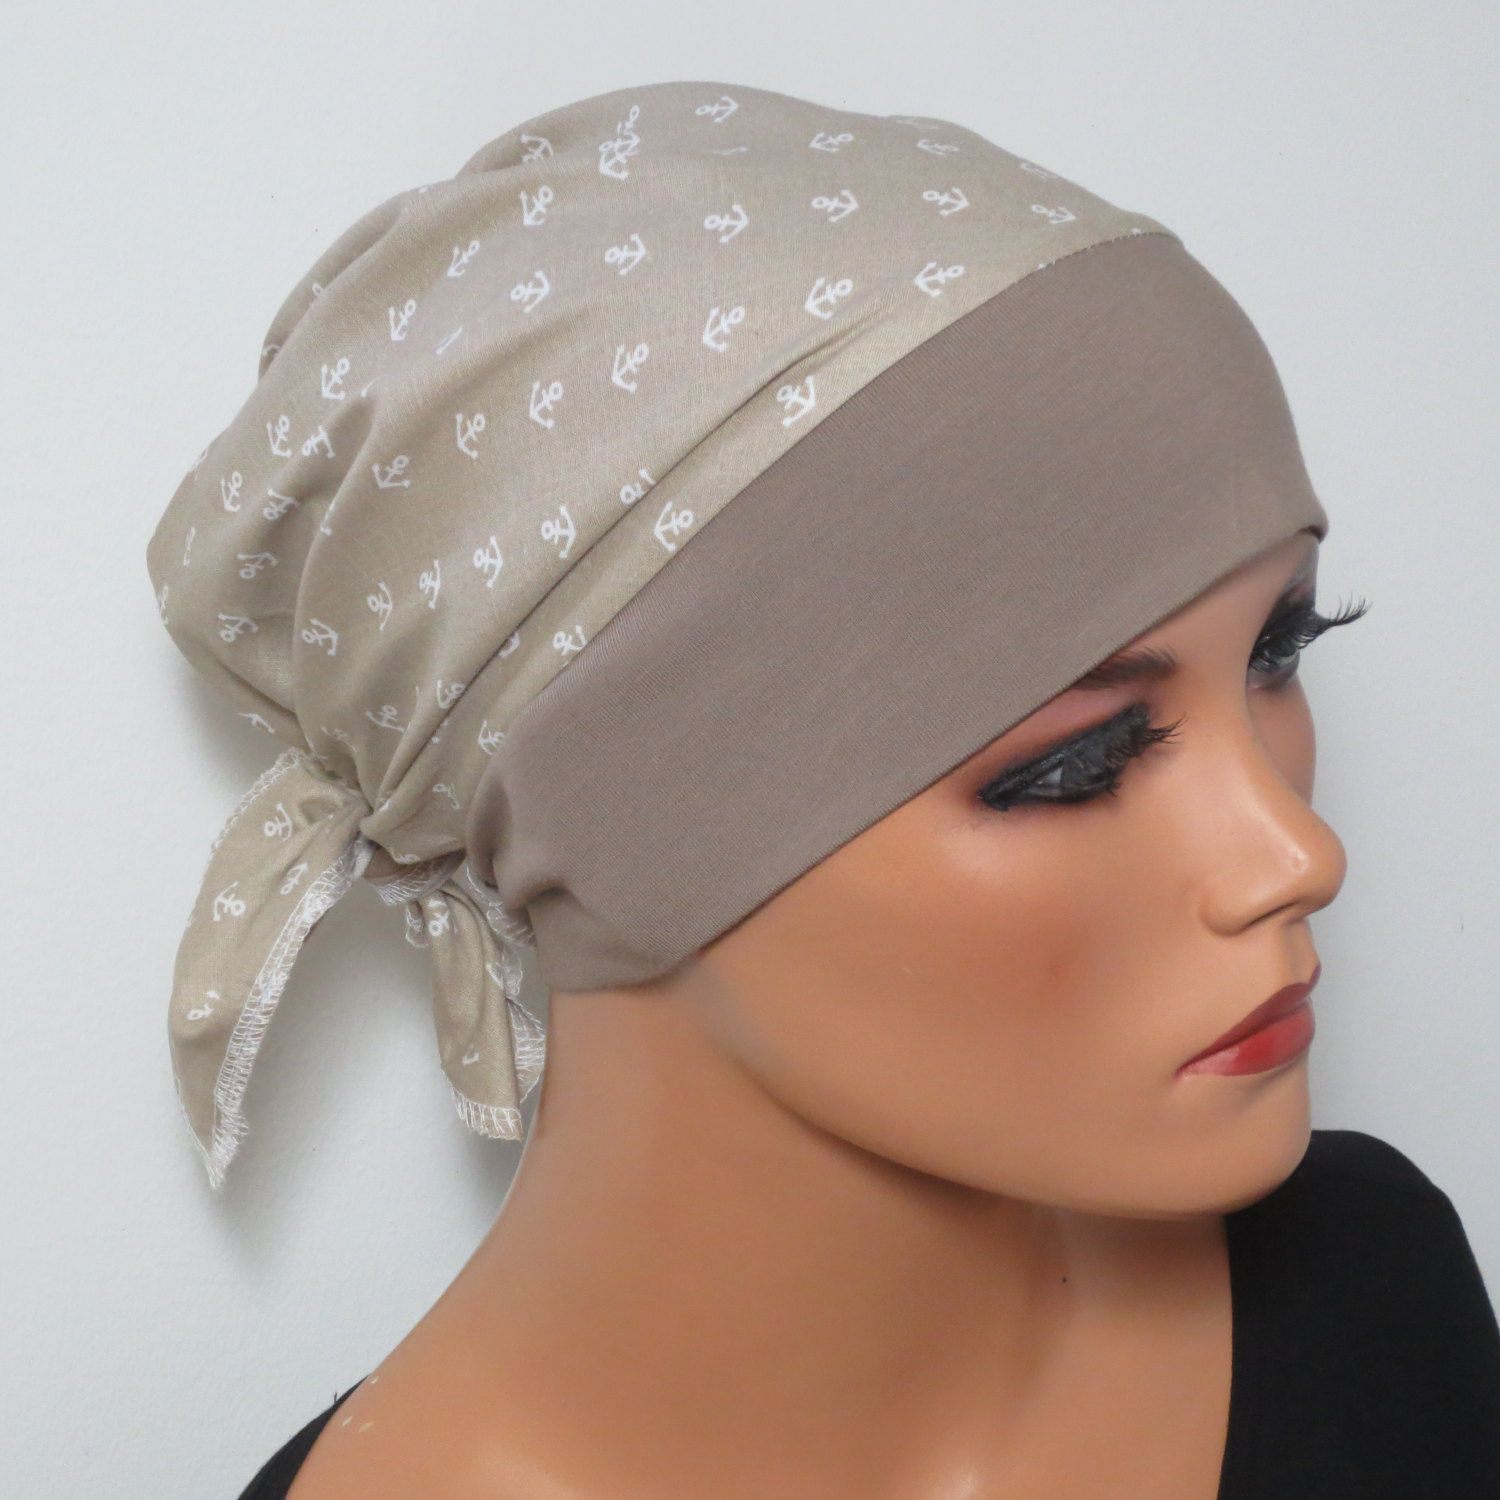 KOPTUCHMÜTZE/CHEMO Hat beige with small anchors almost comfortable ...